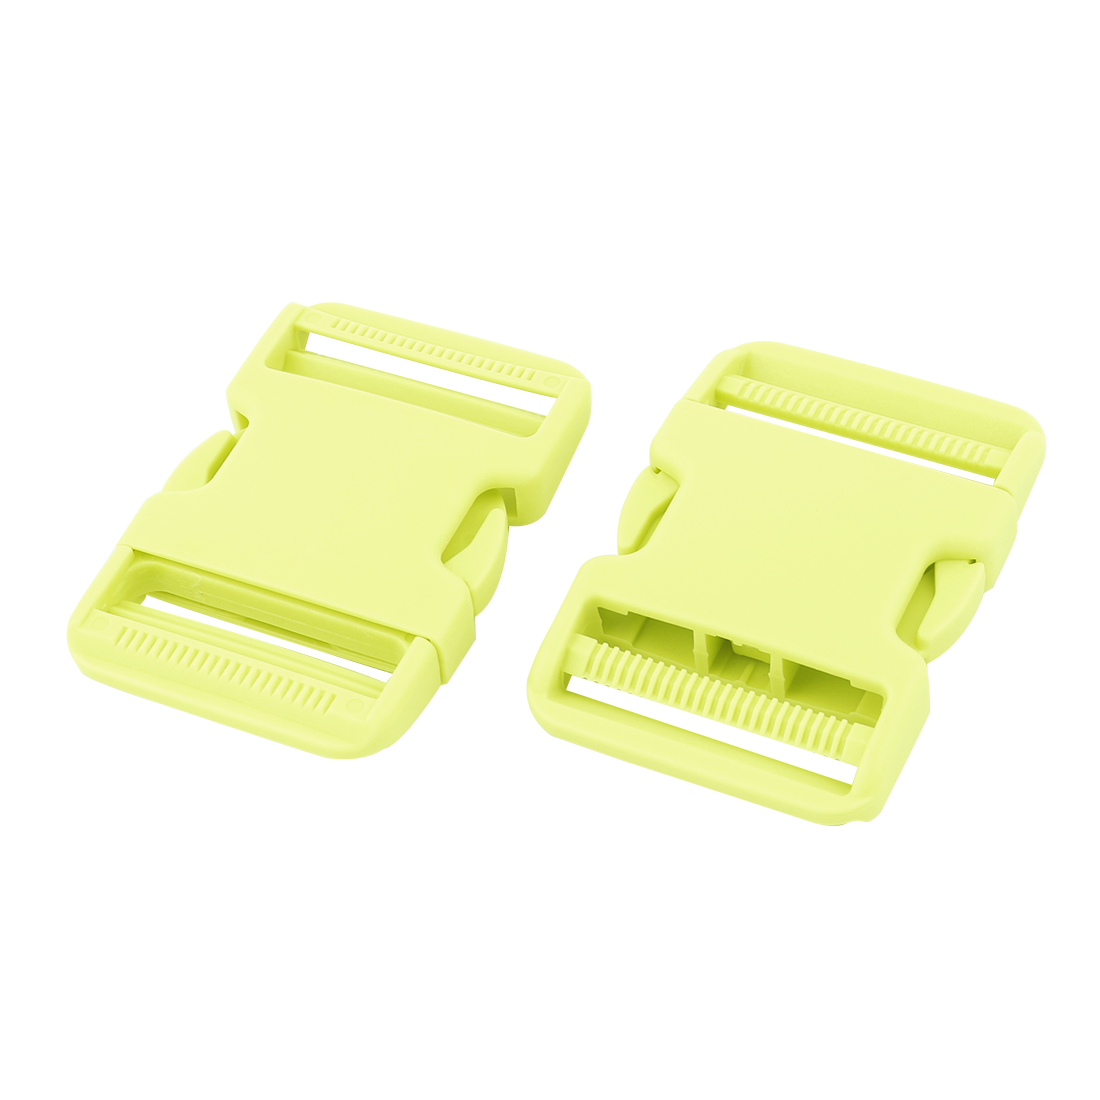 Backpack Plastic Webbing Strap Adjustive Double Side Quick Release Buckle Yellow Green 2 Pcs